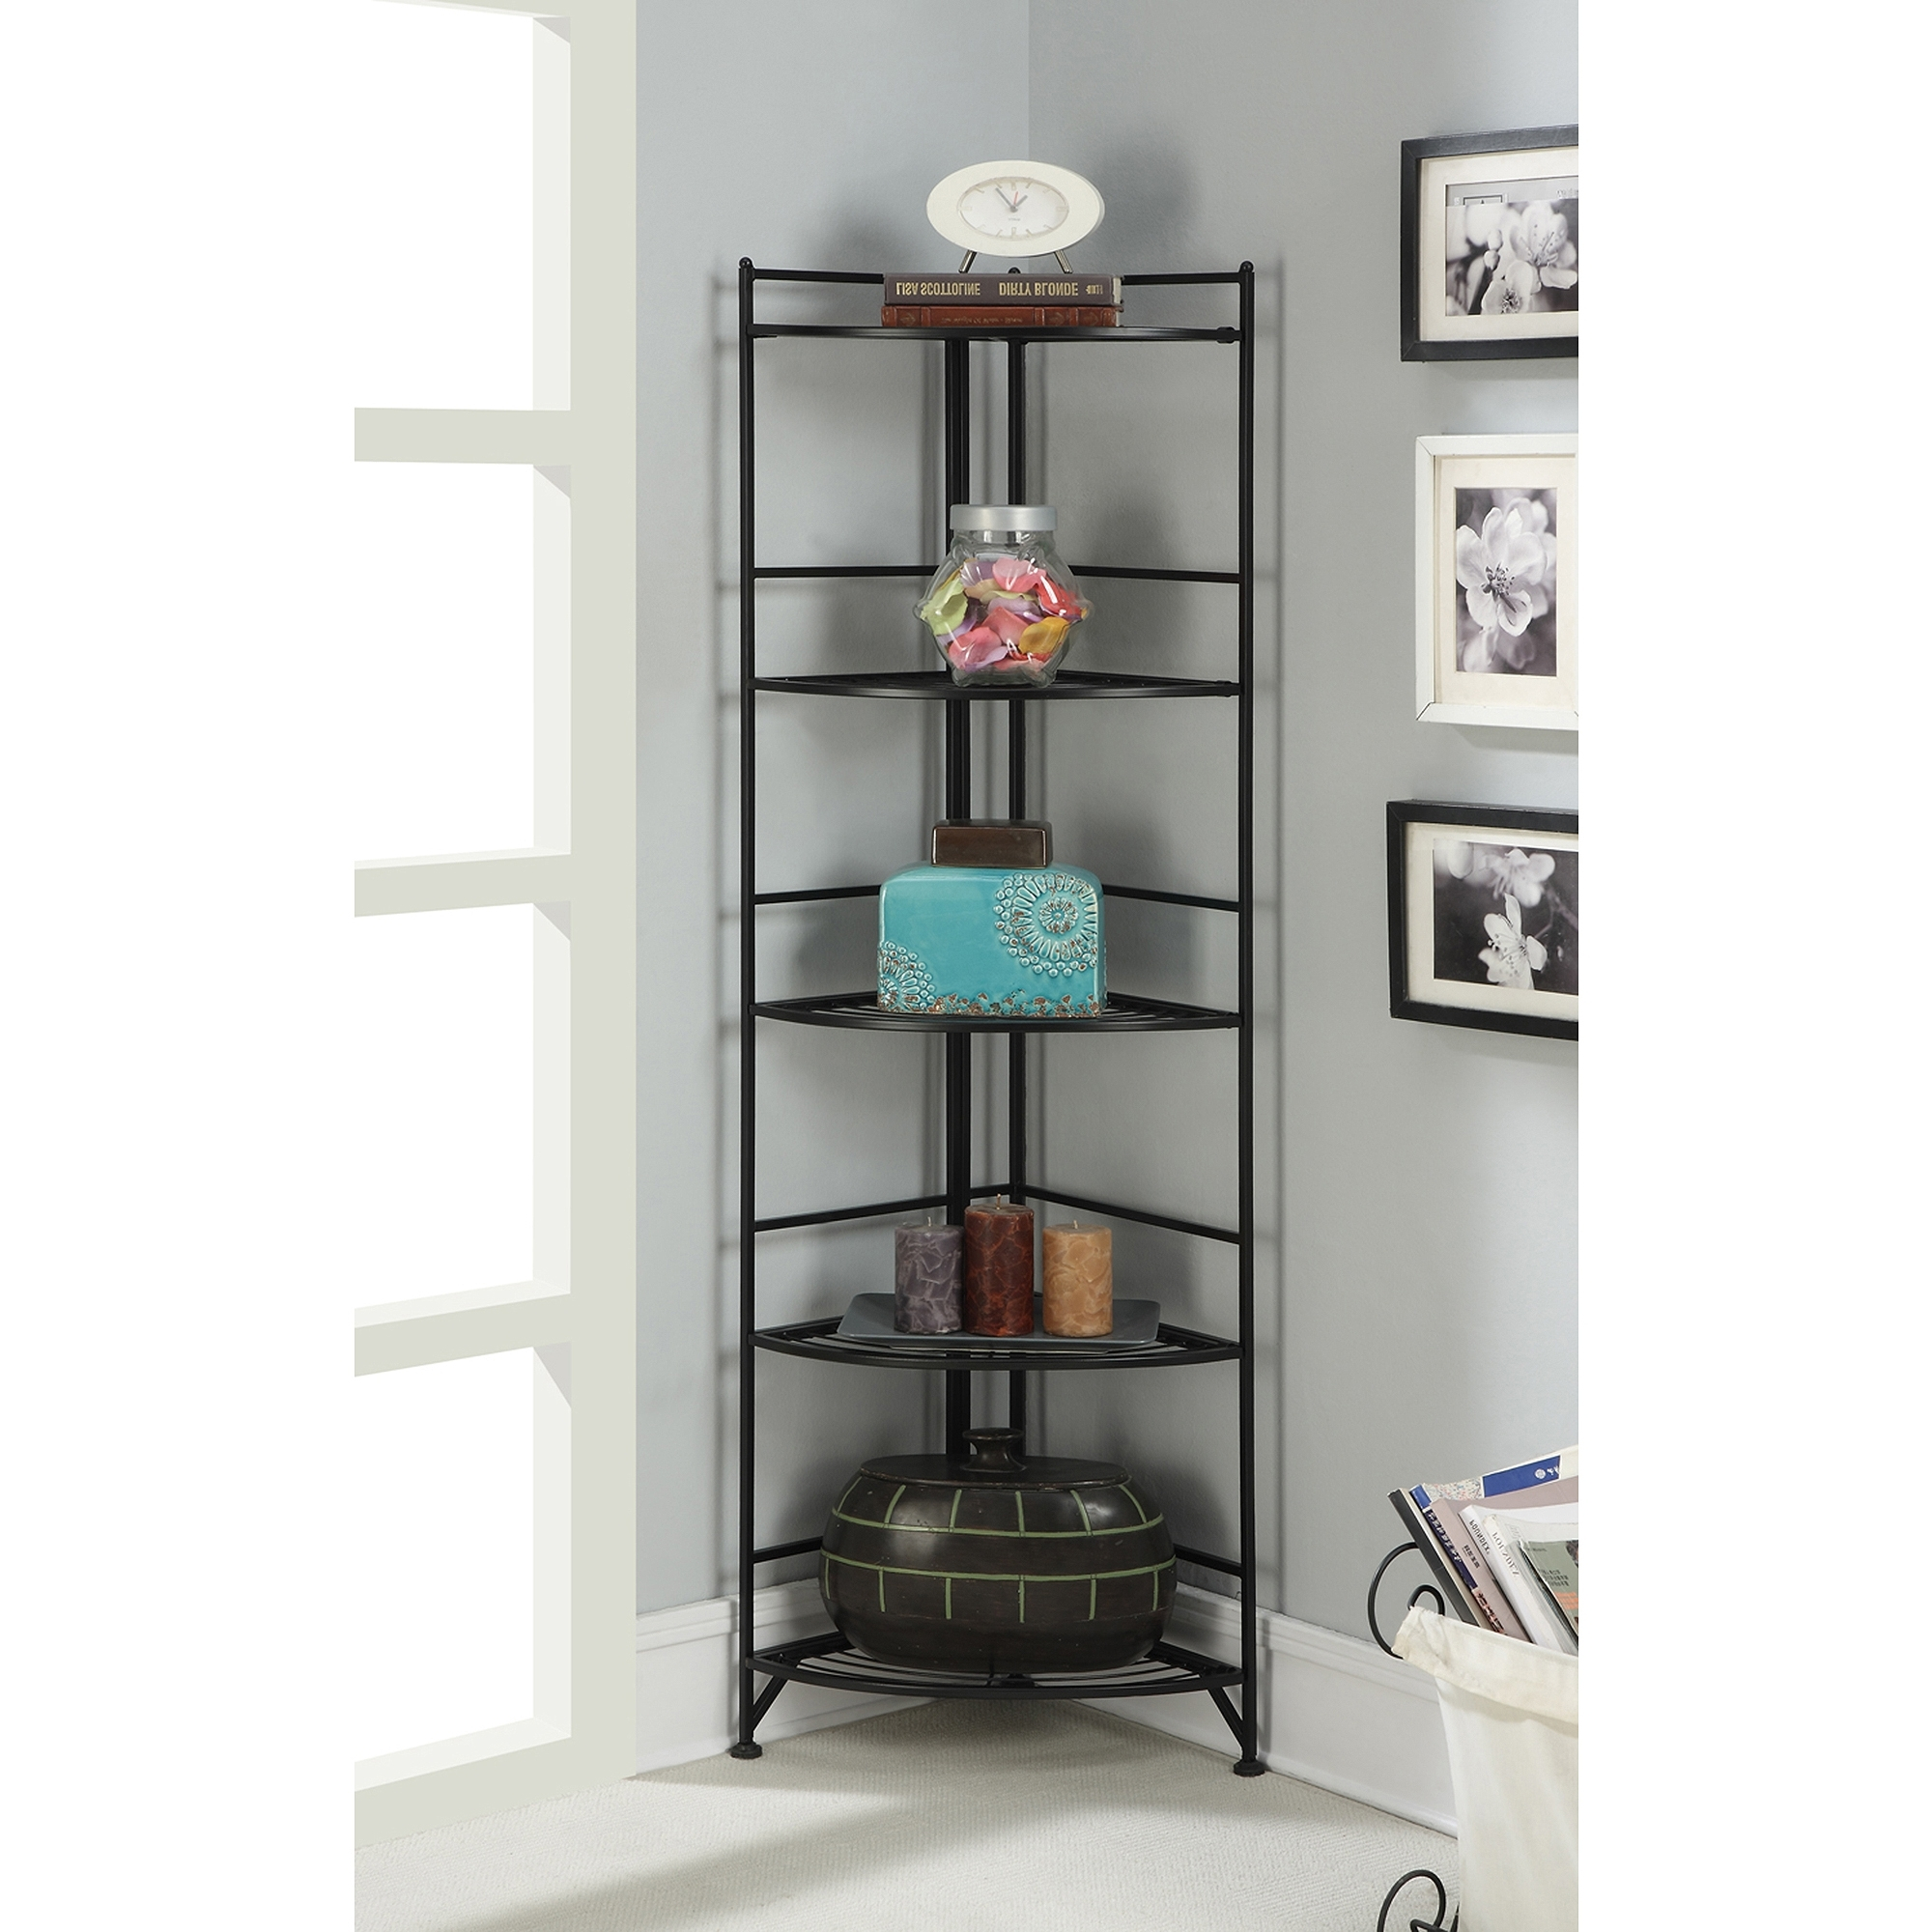 The Best 8 Inch Deep Bookcases